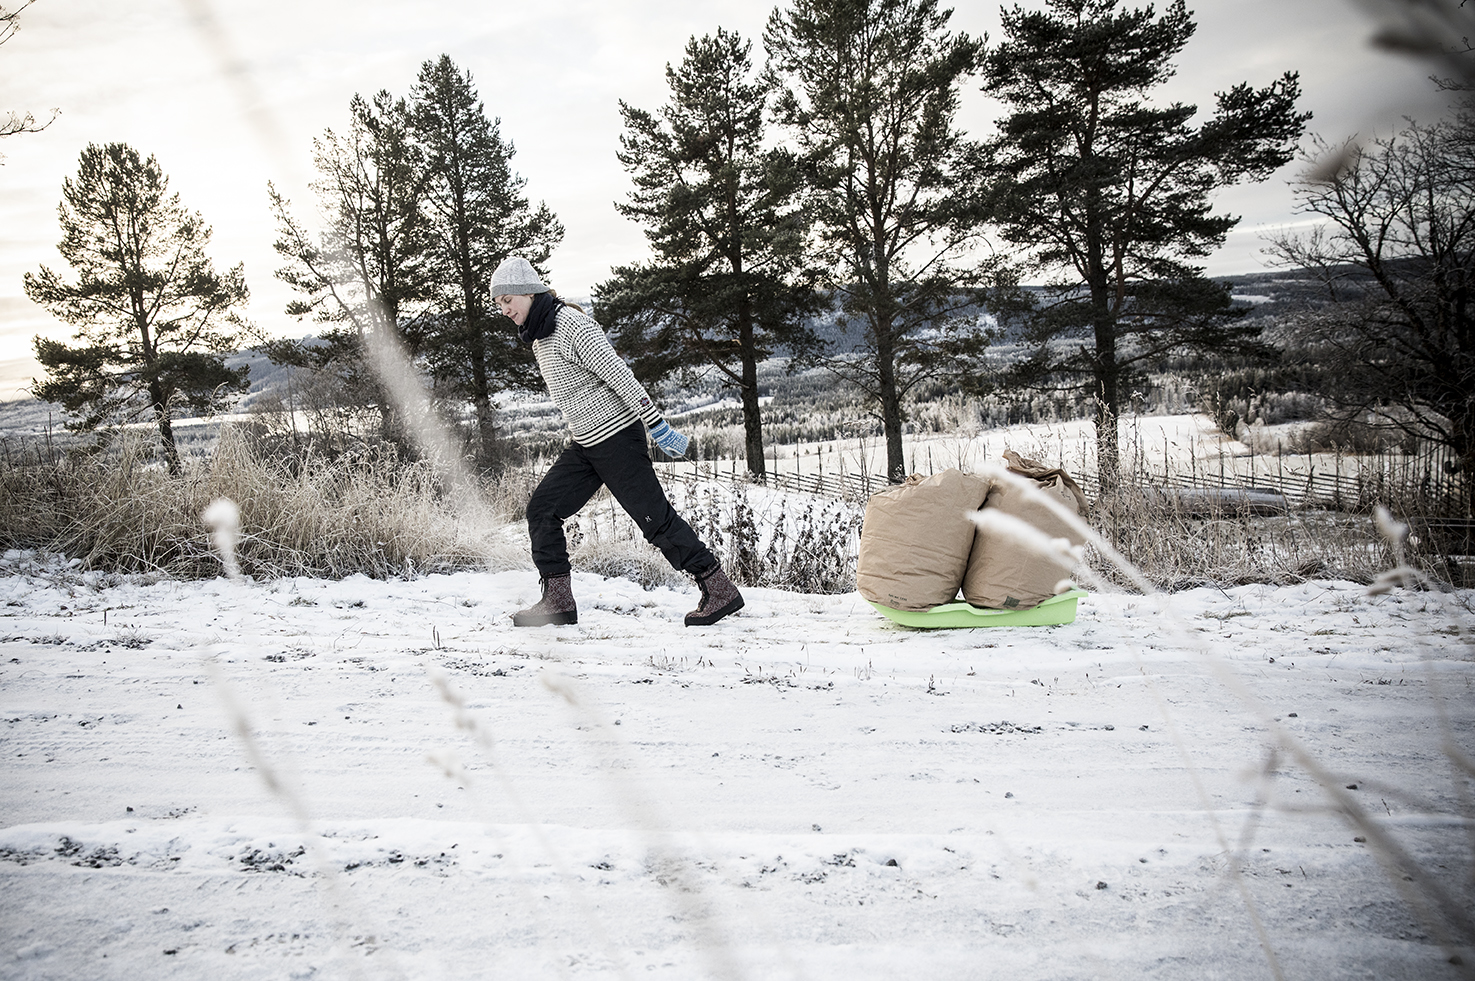 A woman wearing warm winter clothes pulling bags of wool on a sled in a natural, snow environment